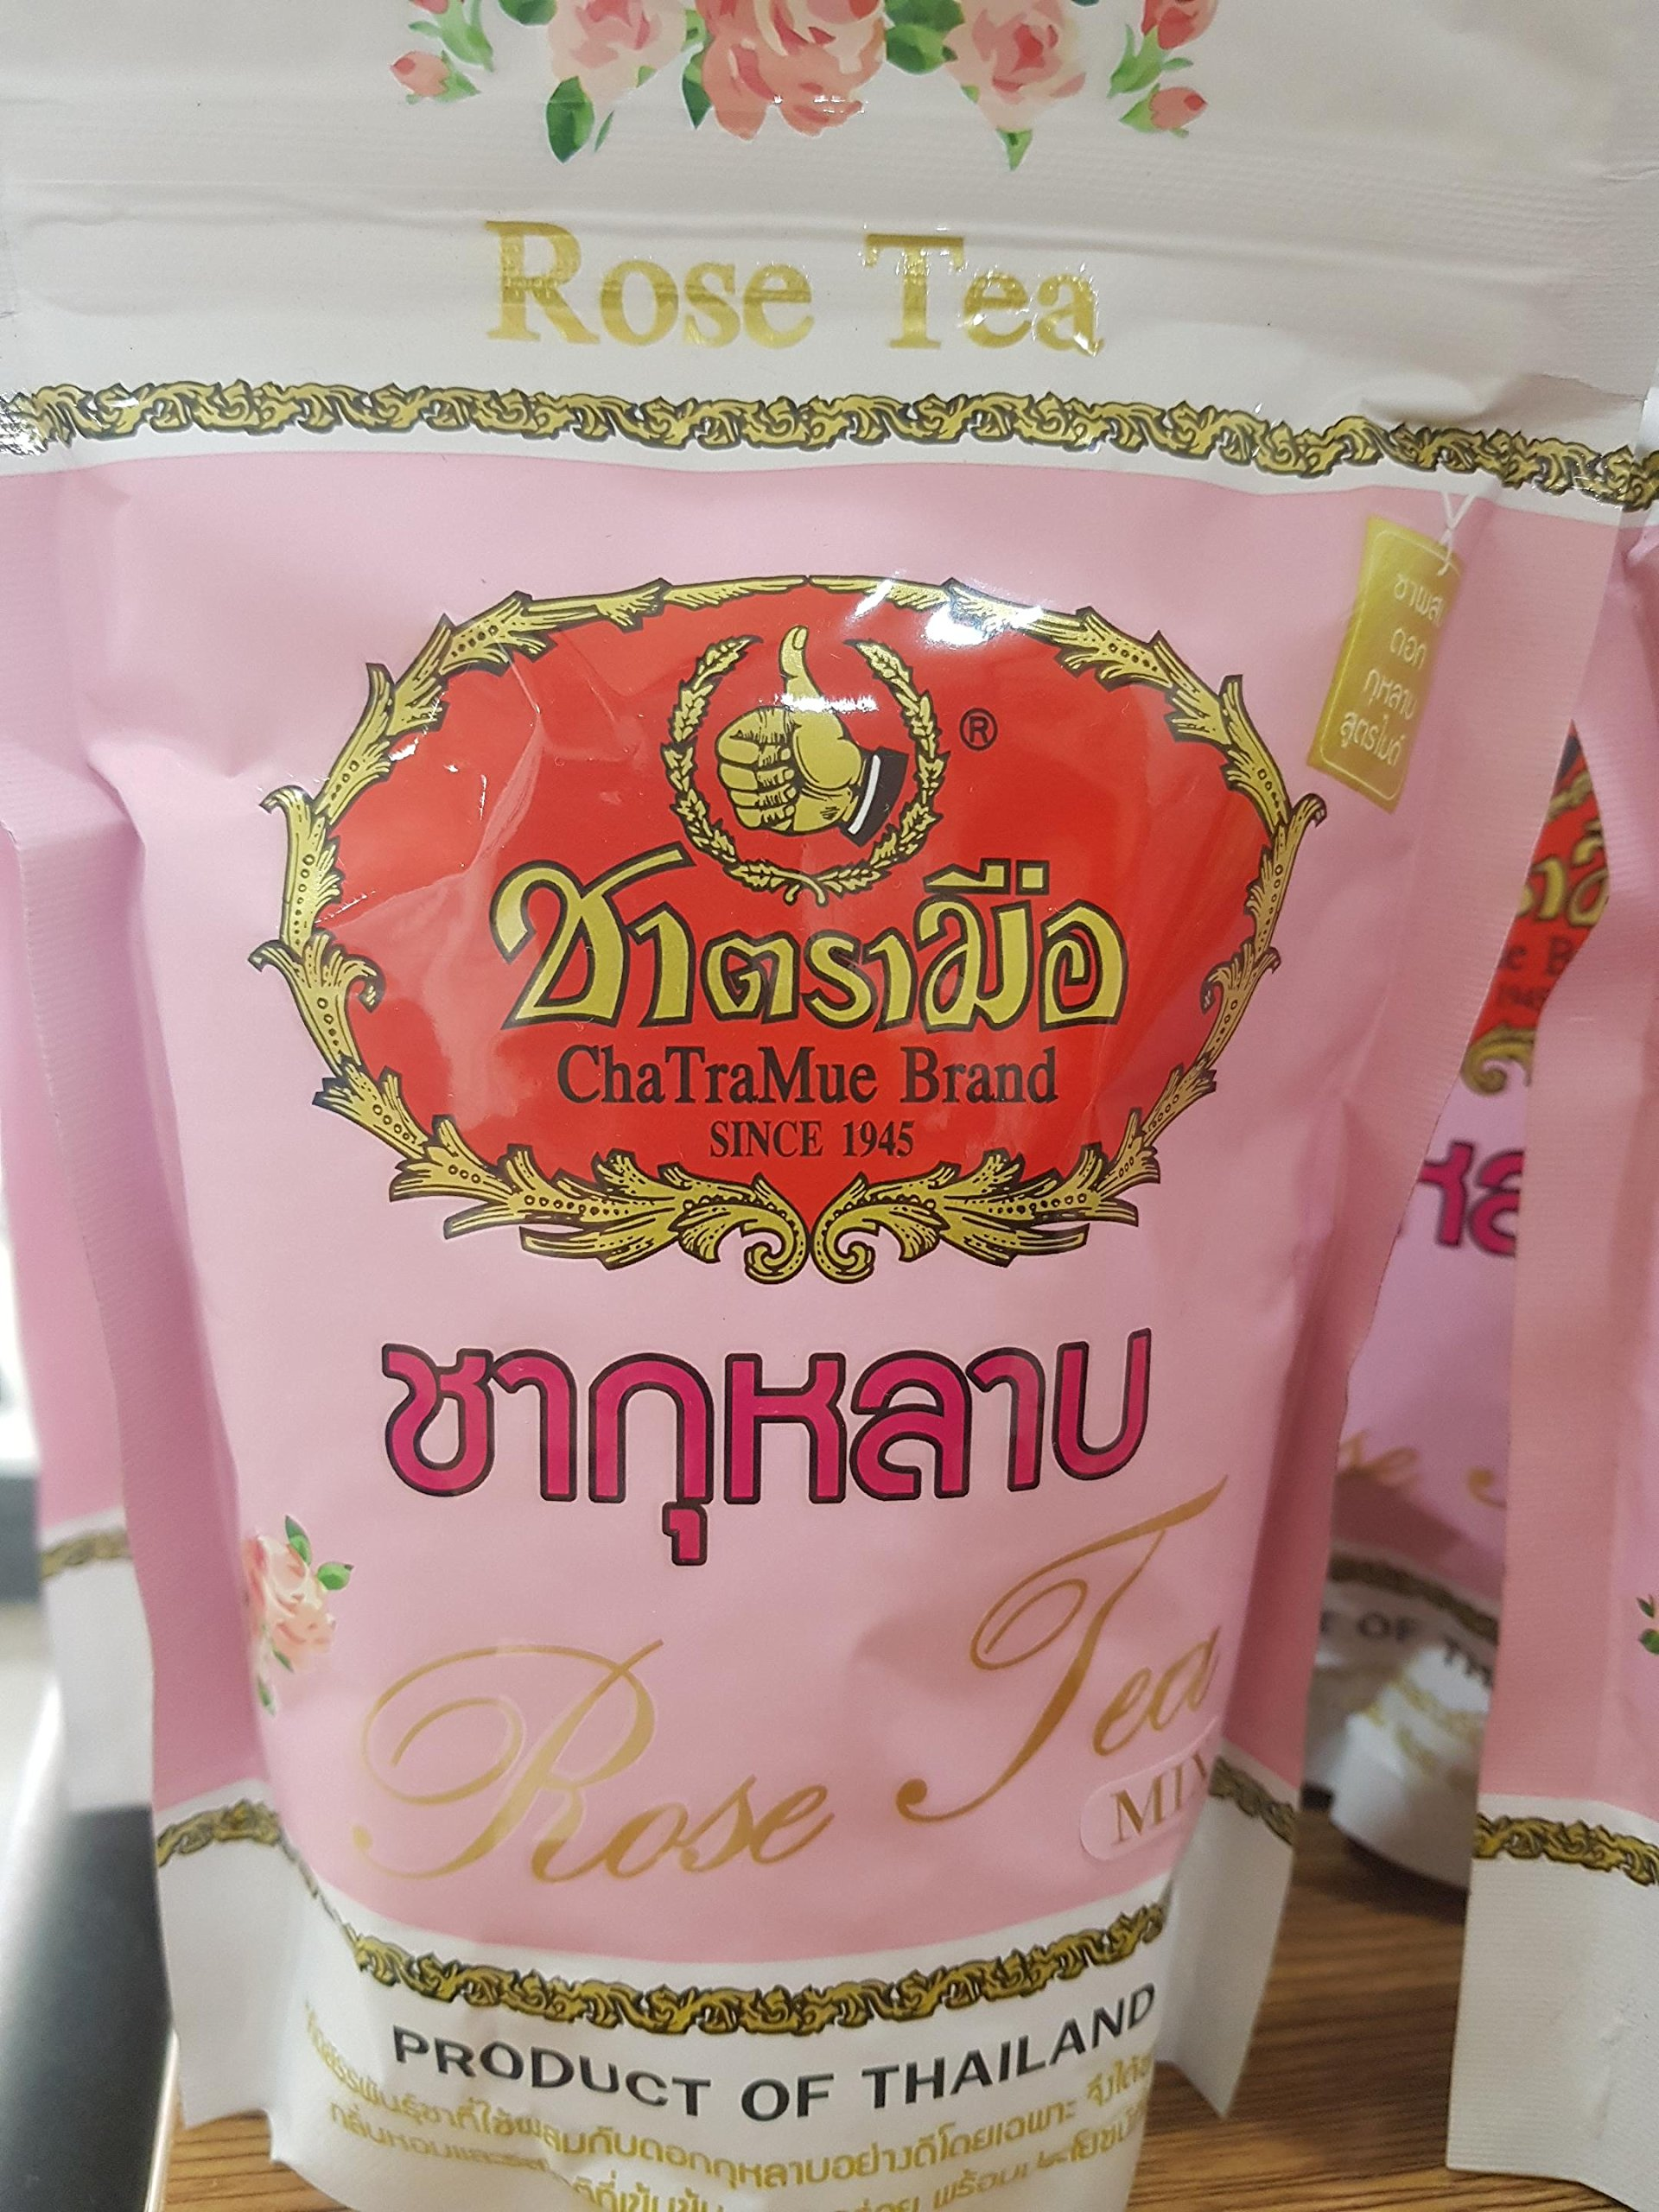 cha tra mue rose tea 150 gram thai tea by Chatramue